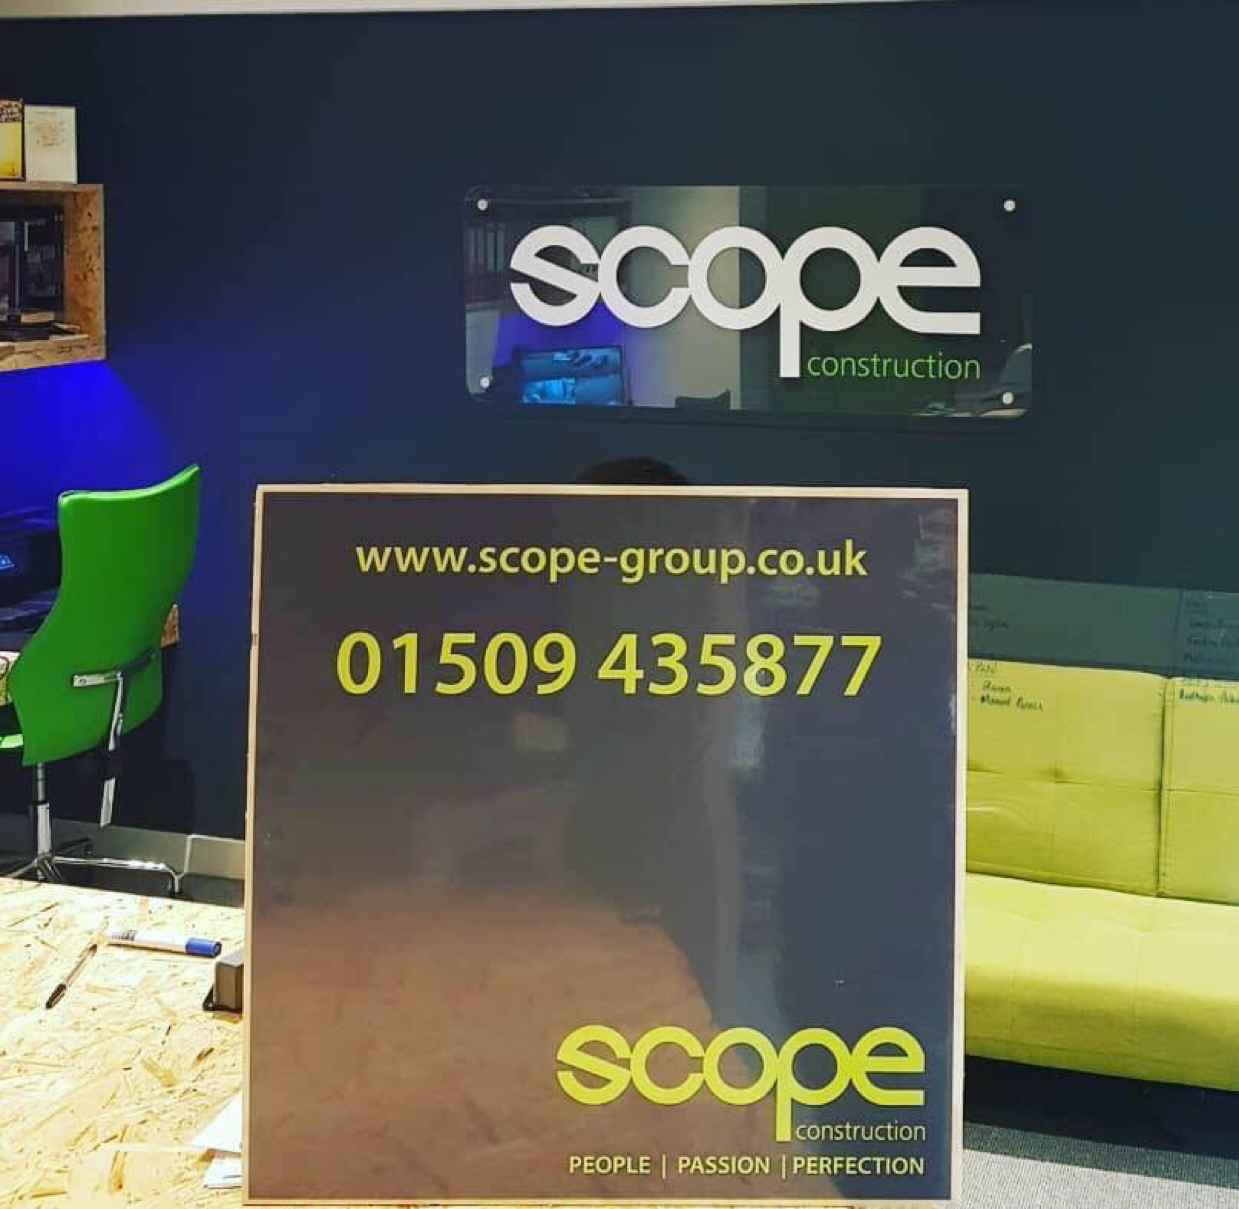 Scope Construction Ltd